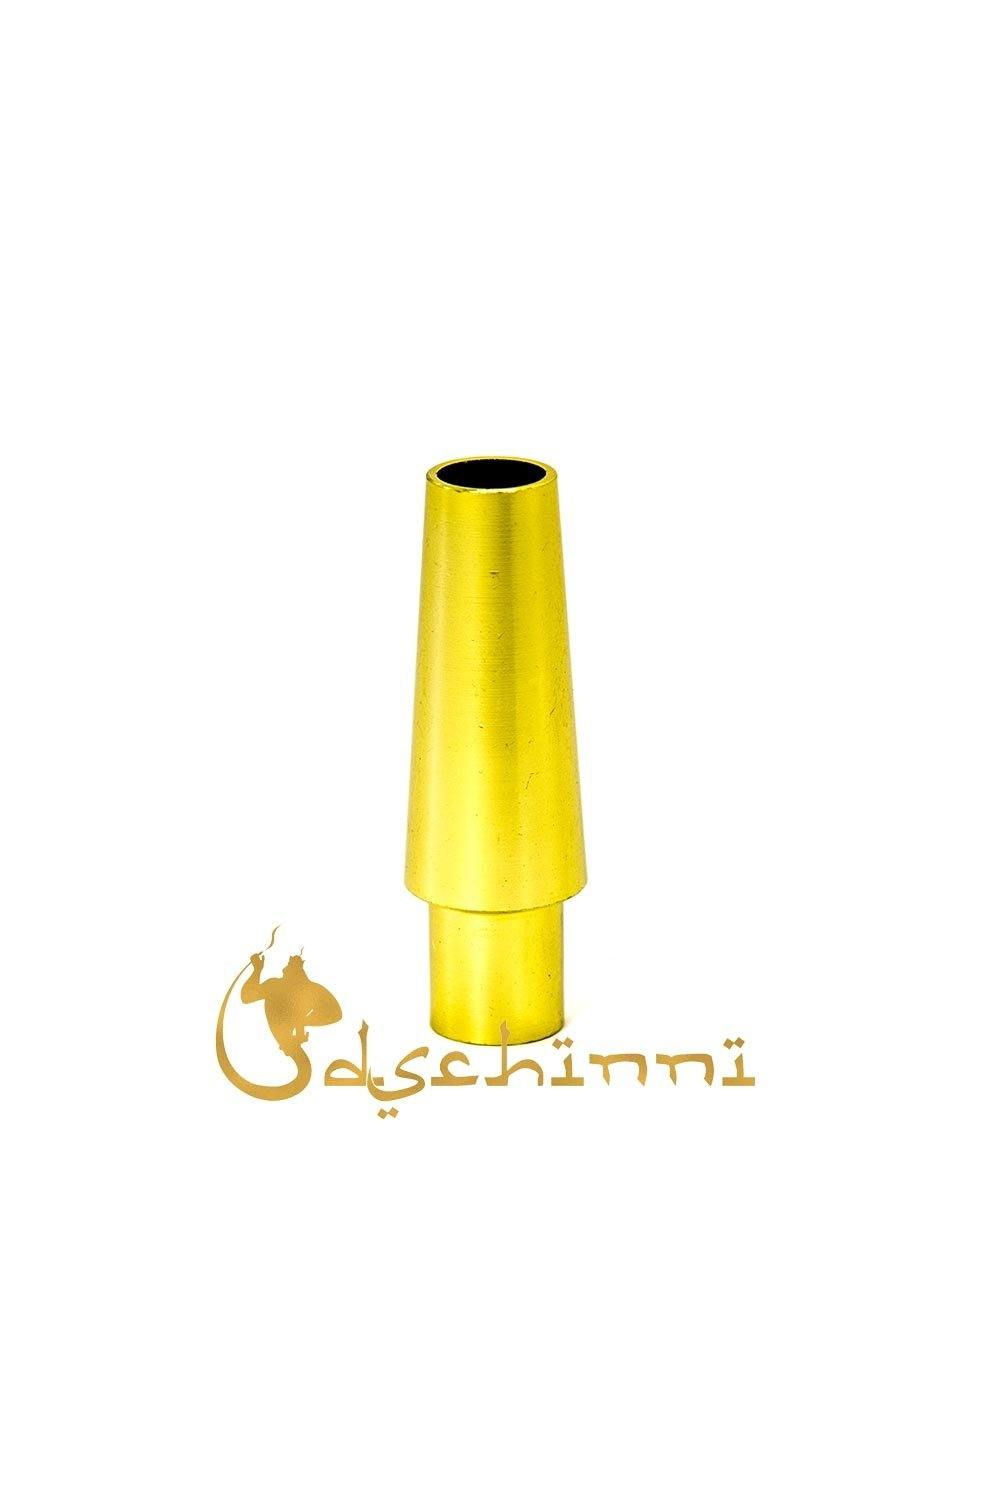 Dschinni Hose End Piece For Silicone Tubes Gold